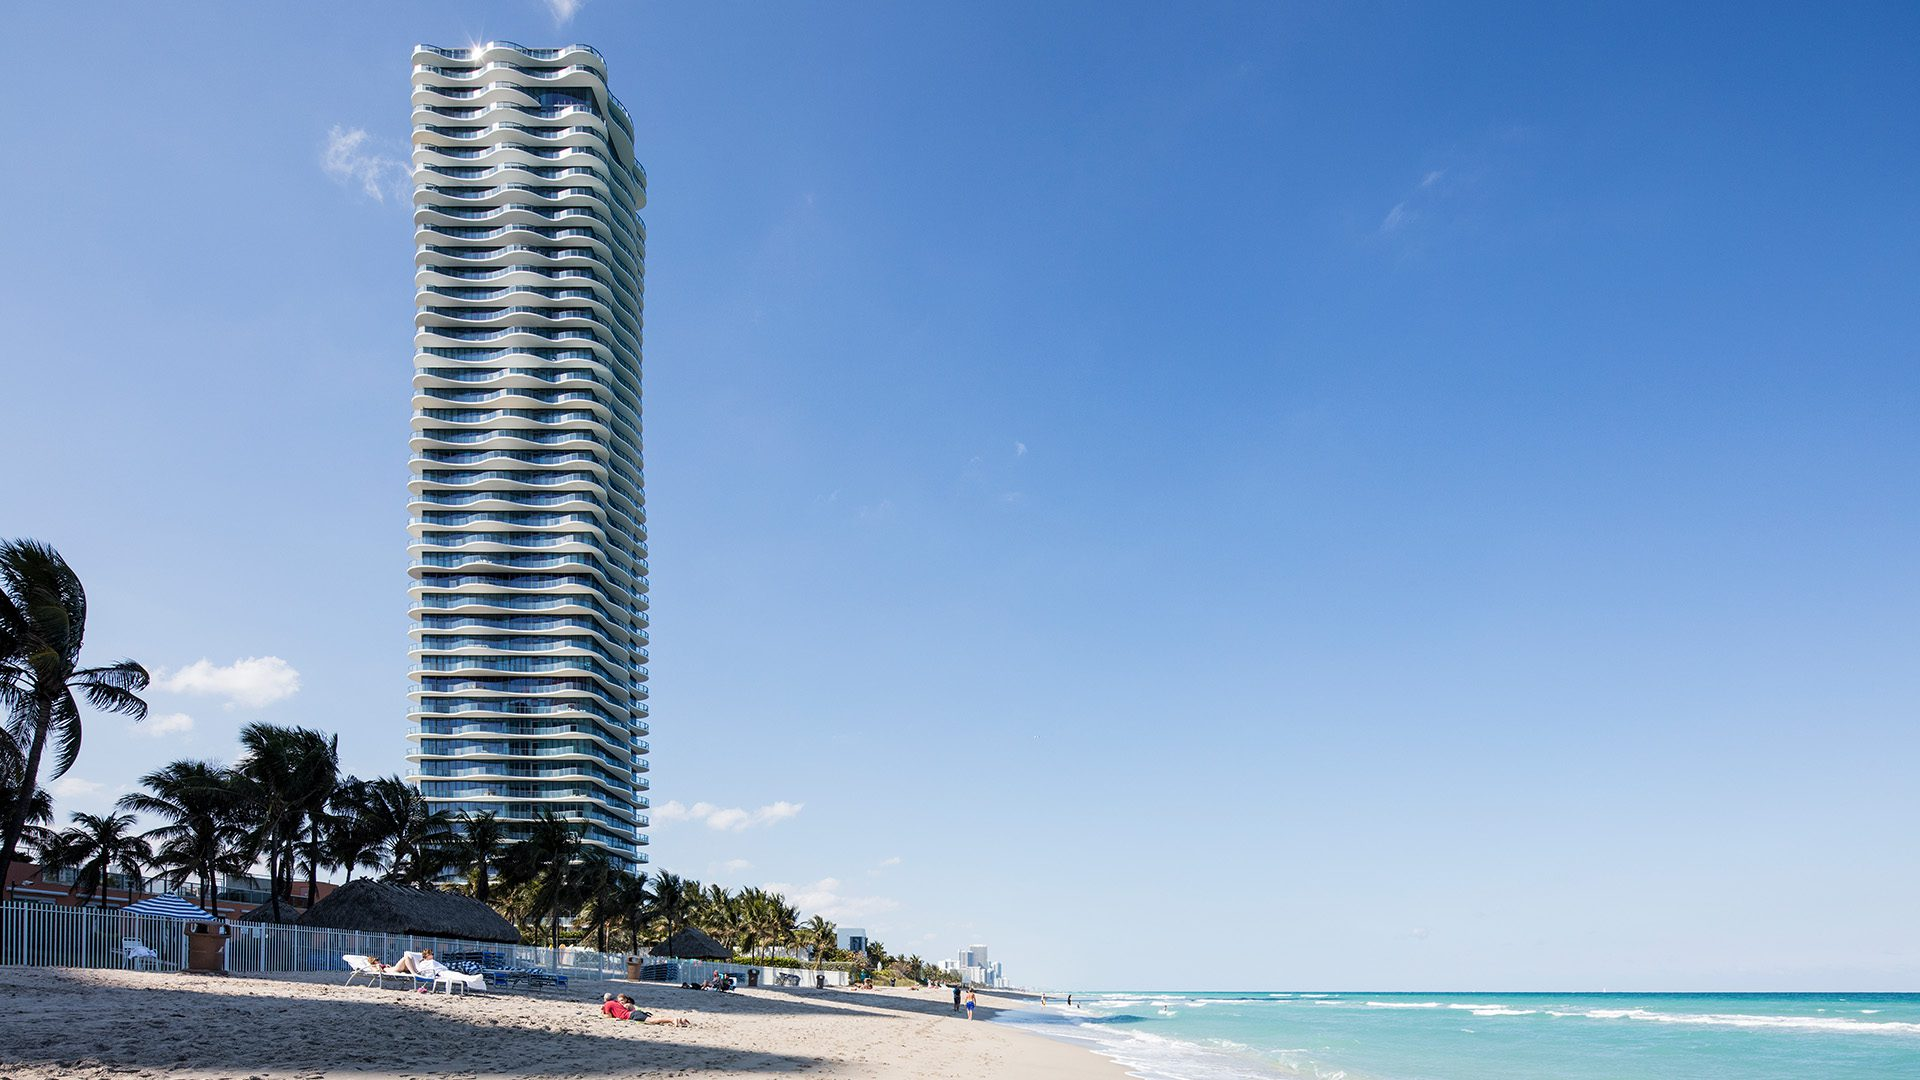 Home_Regalia_Sunny_Isles_Beach-1-1920x1080 Ferguson Home Plan on home needs, home building, home estimates, home home, home ideas, home designing, home blueprints, home tiny house, home samples, home models, home kits, home drawings, home planner, home of the, home problems, home floorplans, home blog, home layout, home contracts, home cargo,